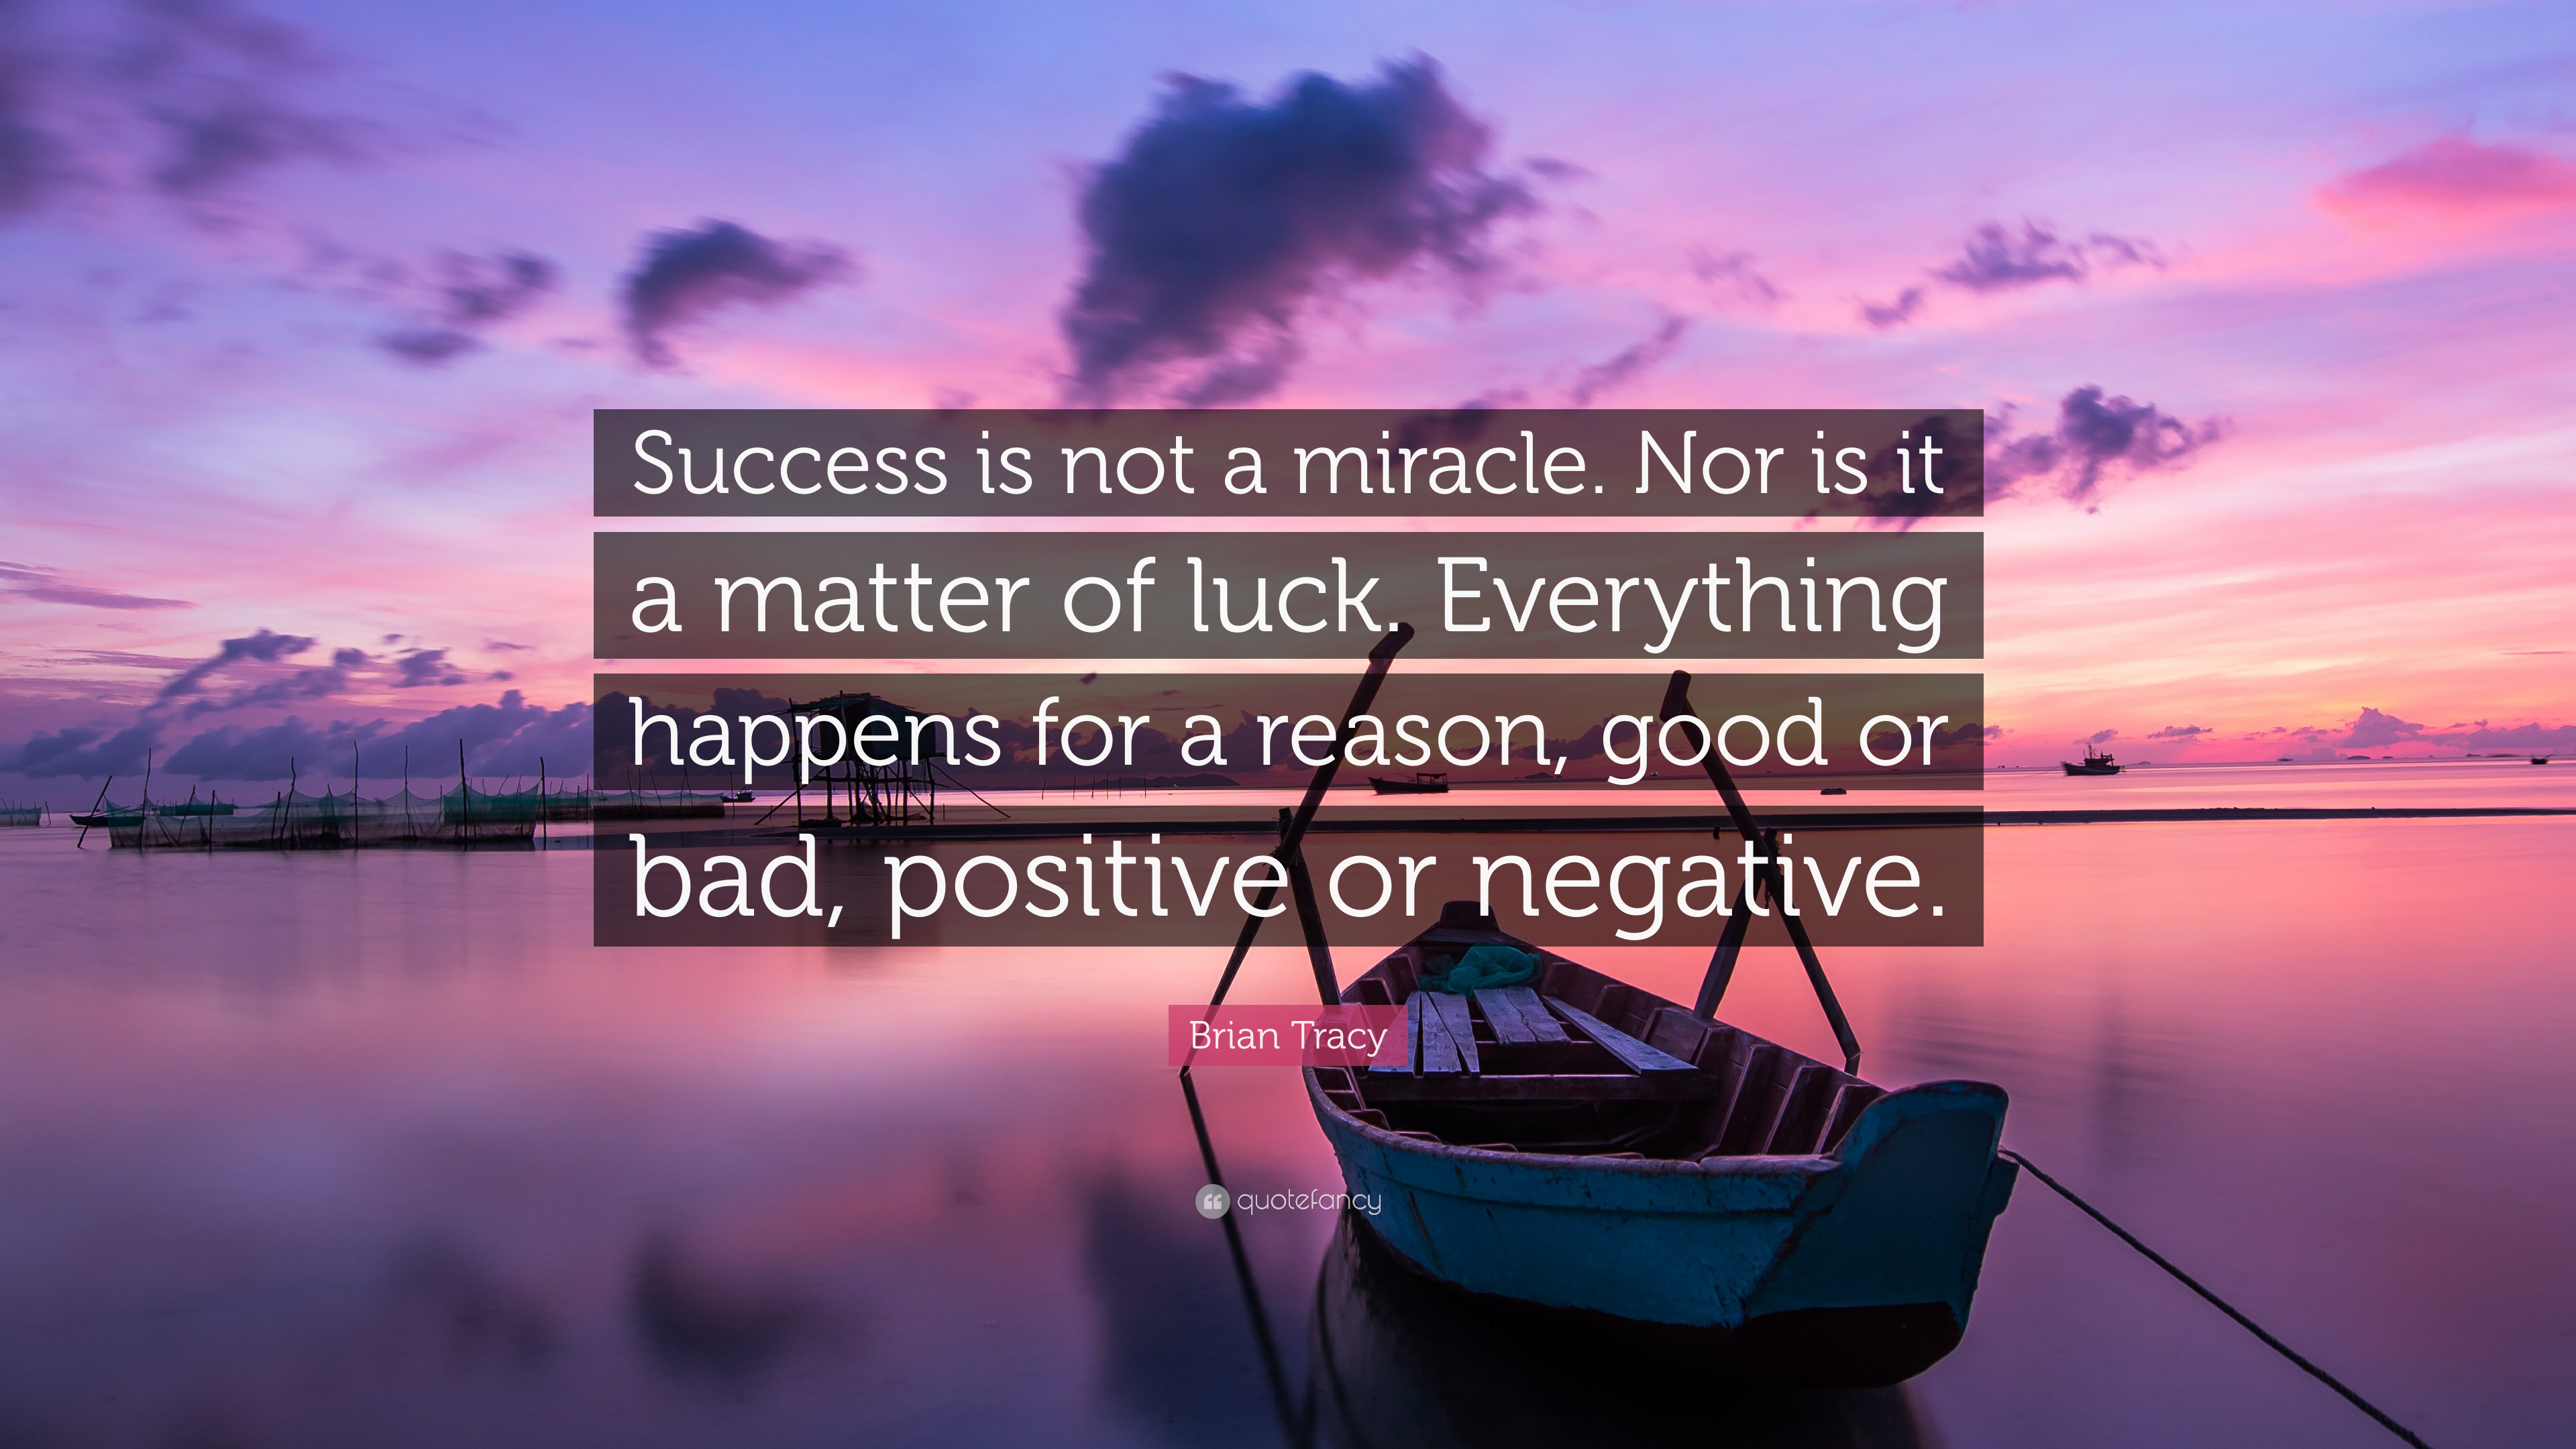 Brian Tracy Quote Success Is Not A Miracle Nor Is It A Matter Of